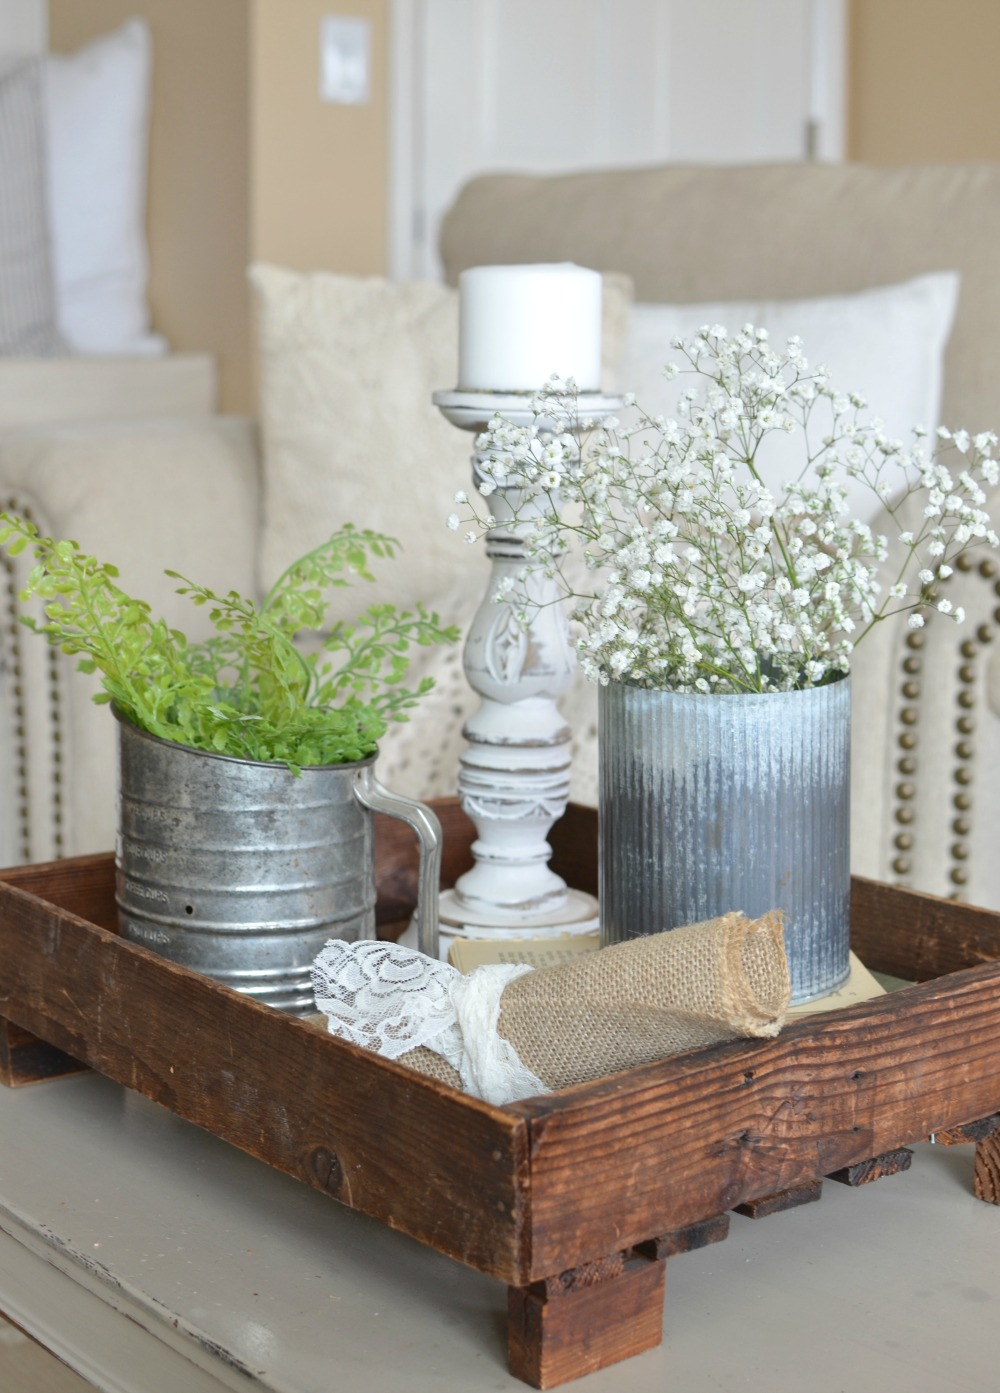 5 quick tips for a farmhouse style vignette for Decor quick